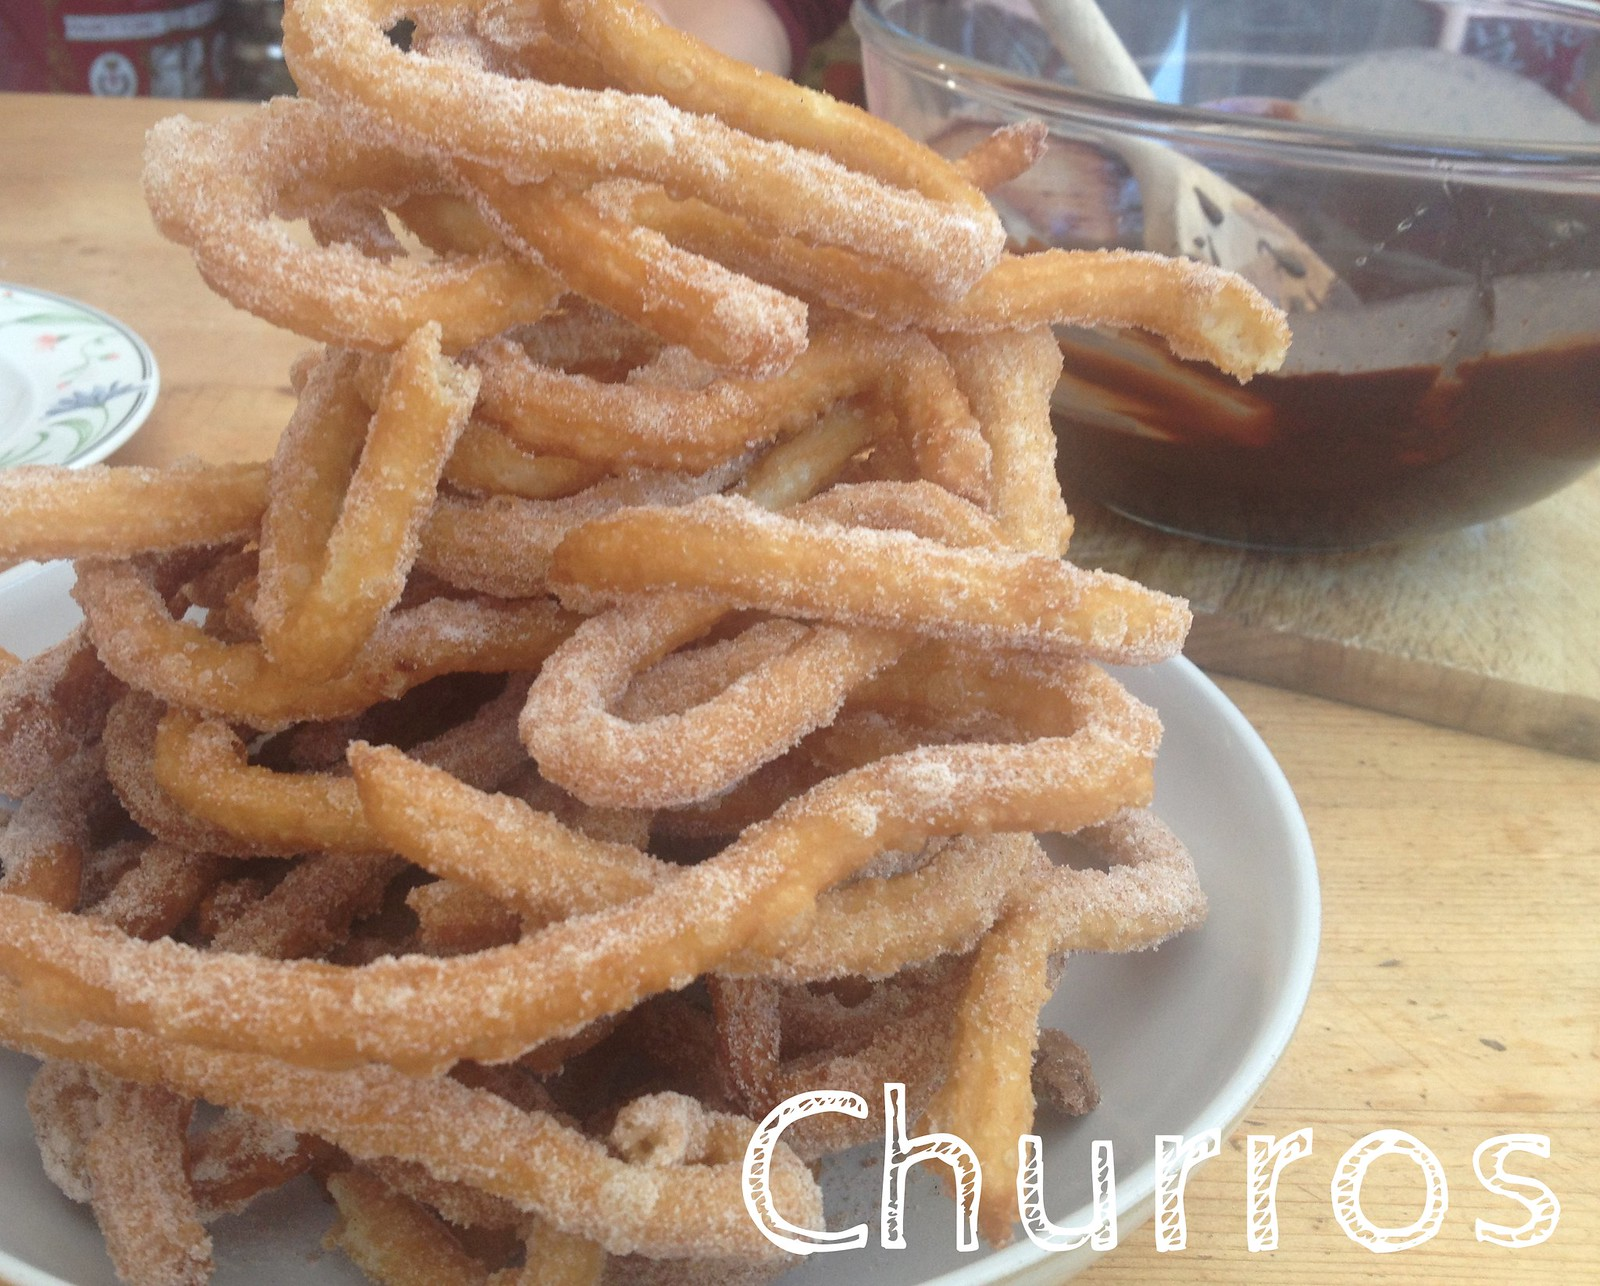 Homemade Churros and Chocolate Sauce